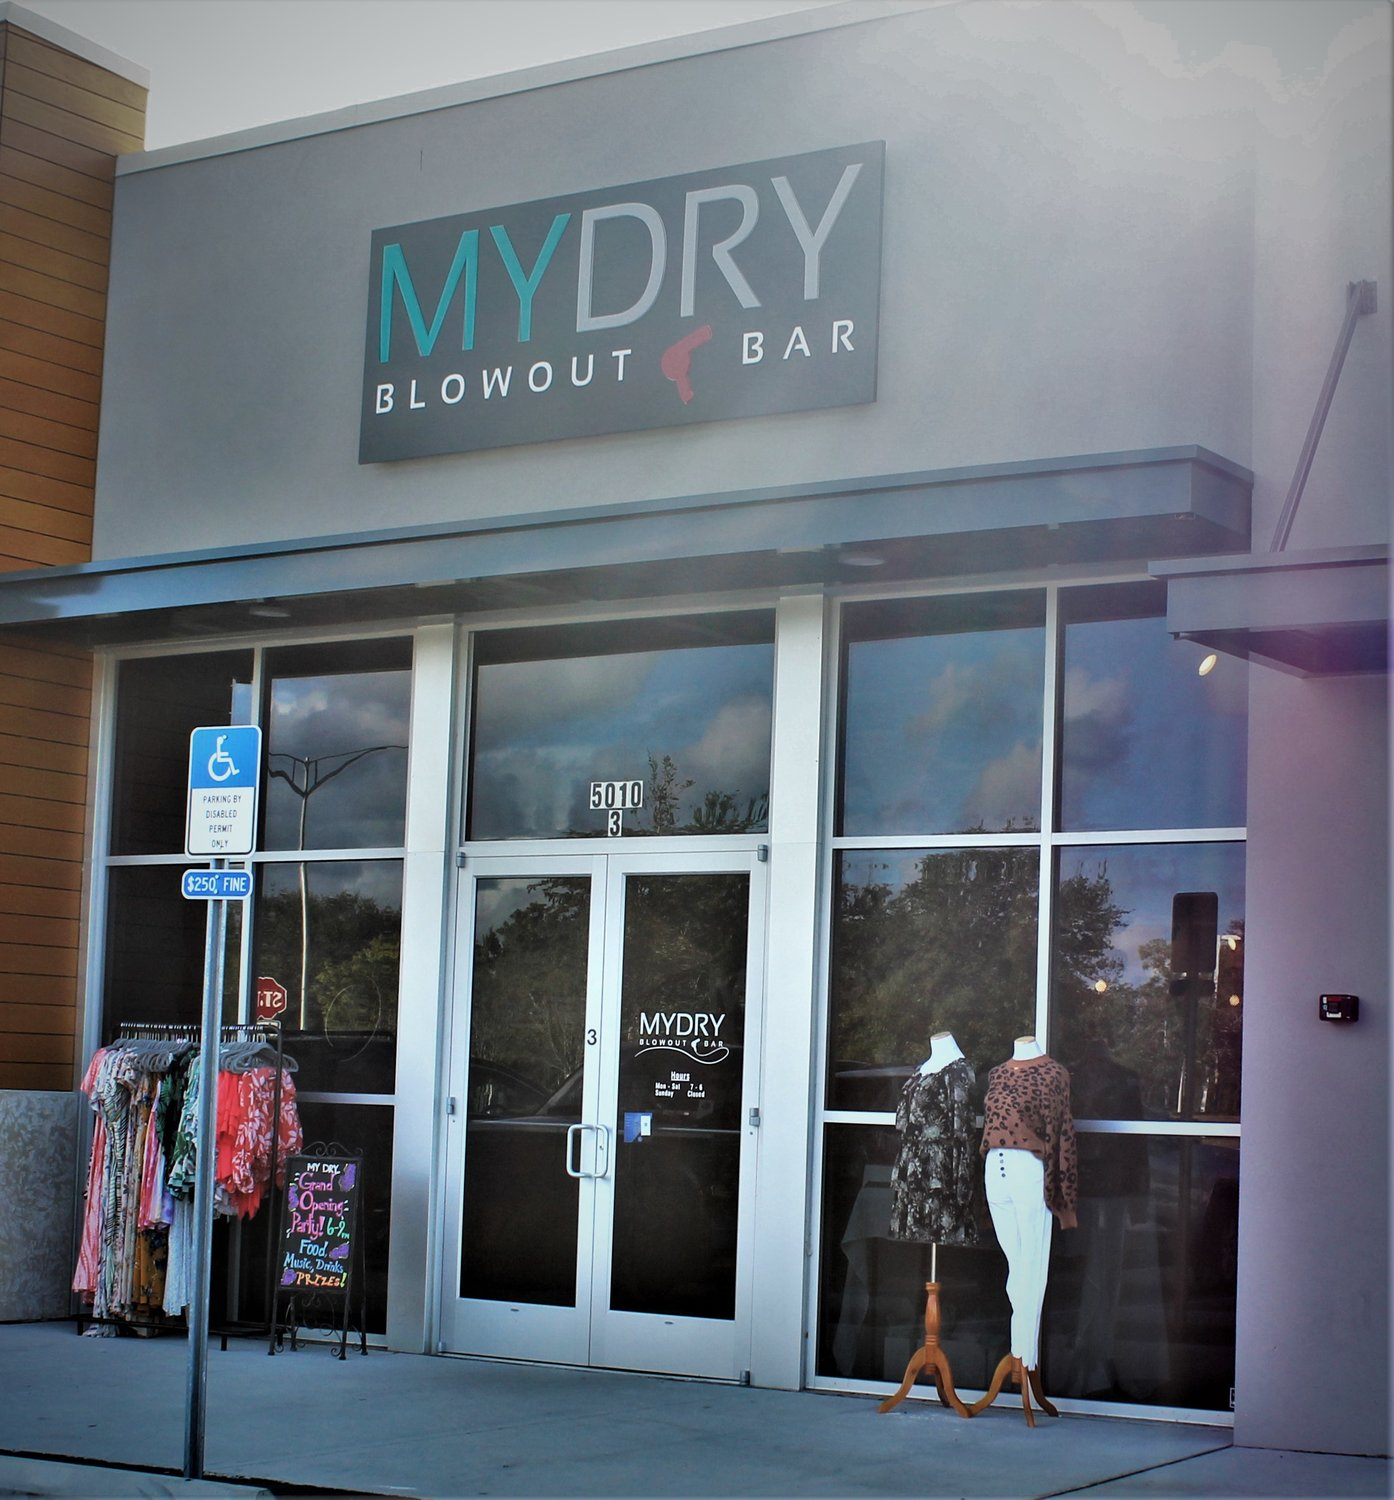 Jacksonville Town Center: Mydry Blowout Bar Opens Second Location By Jacksonville's